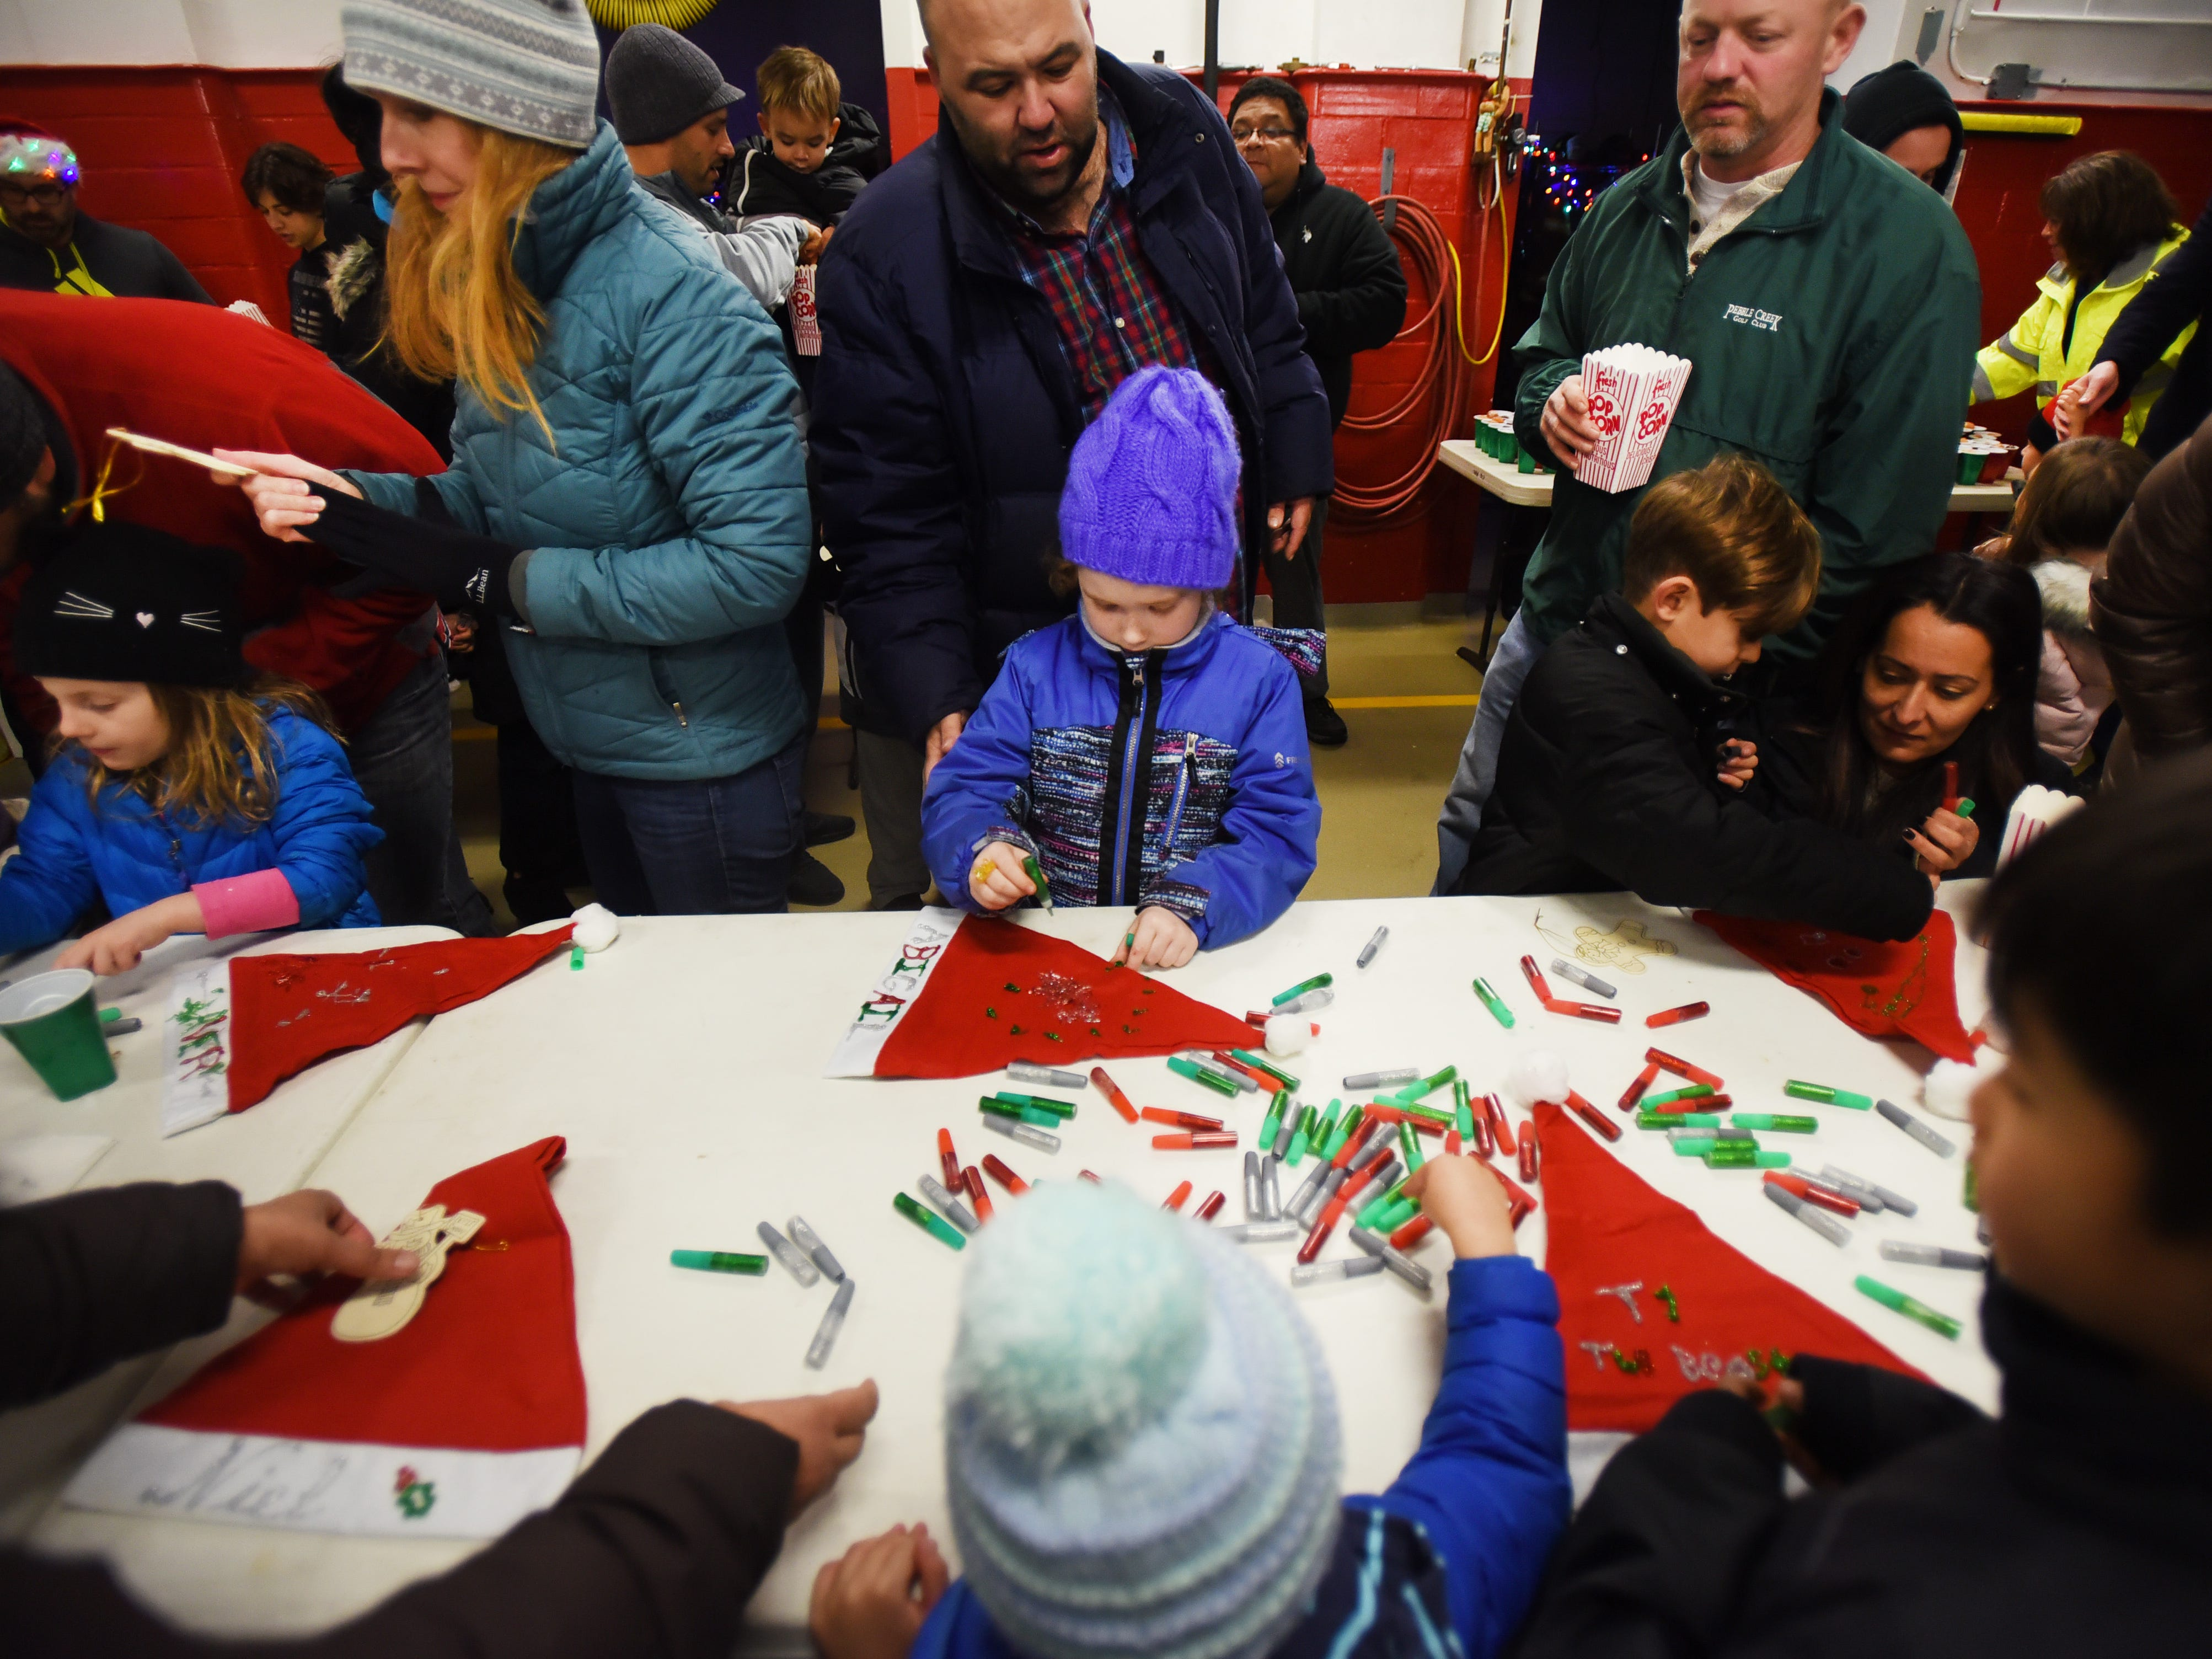 General scene of children and their parents working on decorating Christmas caps prior to the Christmas Tree Lighting ceremony at Cedar Grove Town Hall on 12/03/18.